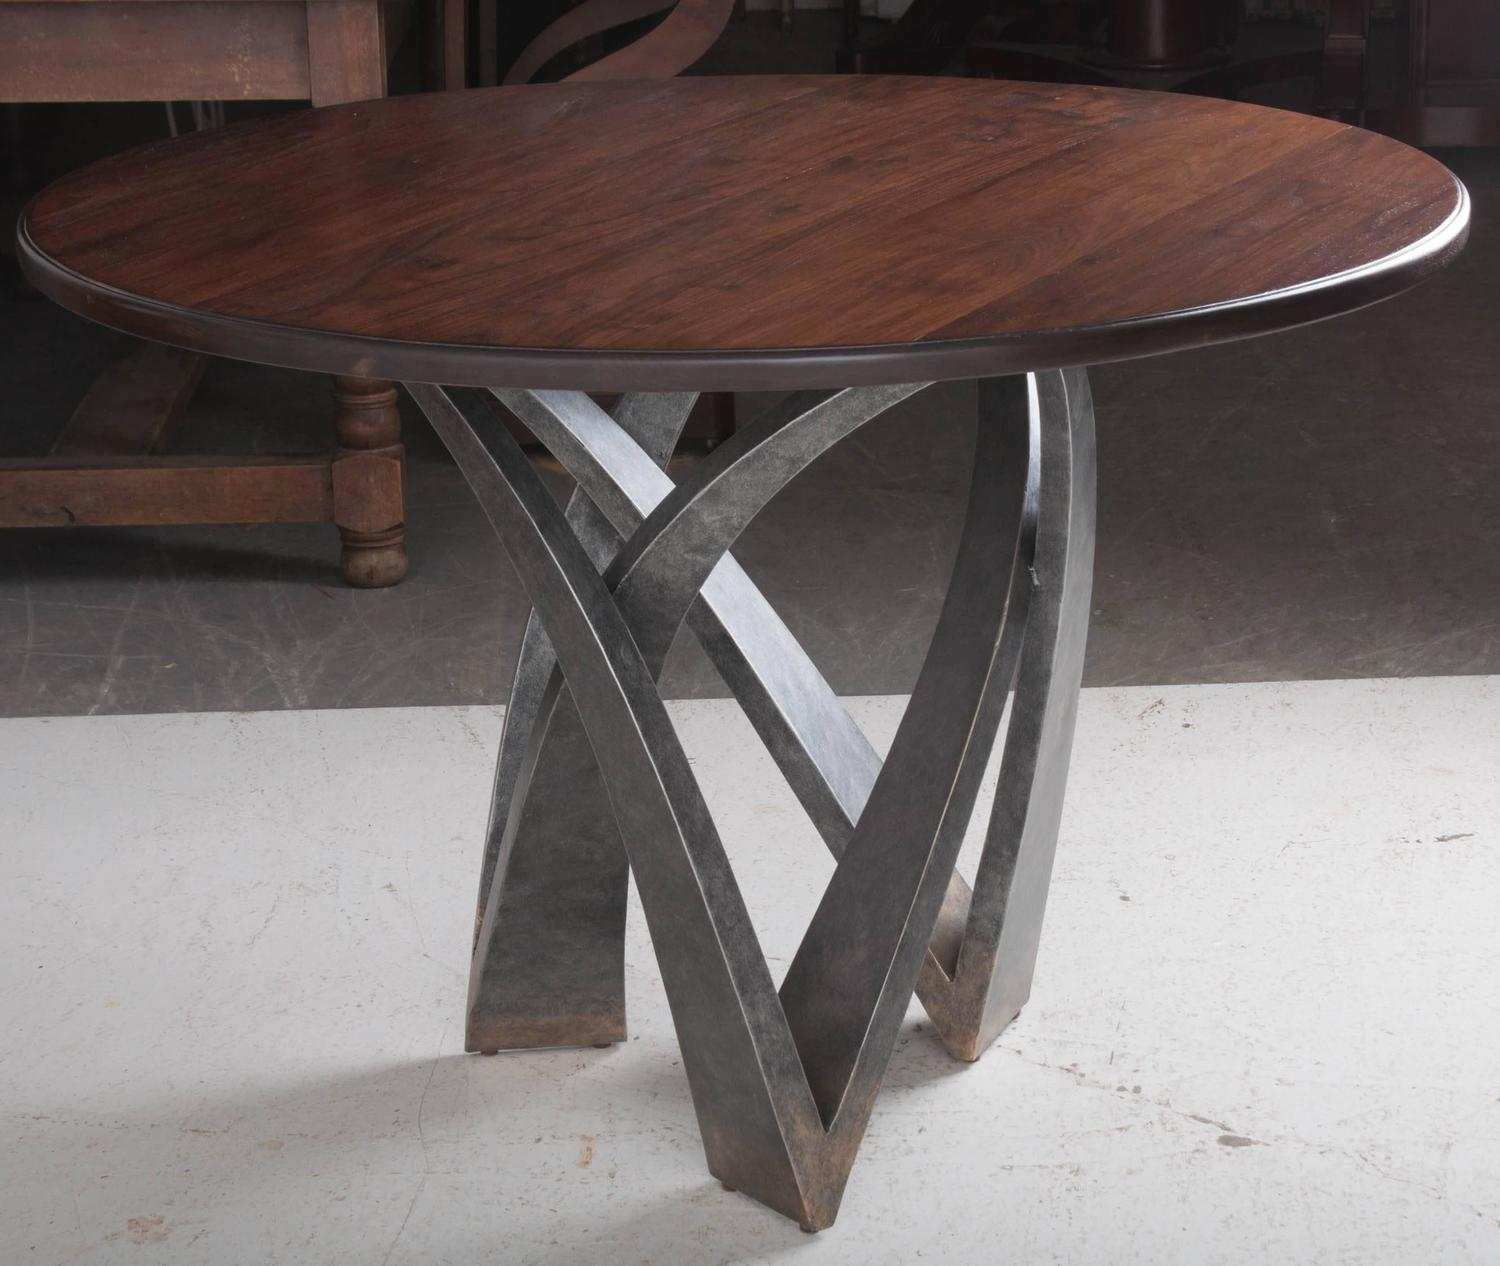 Round walnut top table with decorative metal base for sale at 1stdibs - Decorative metal table bases ...